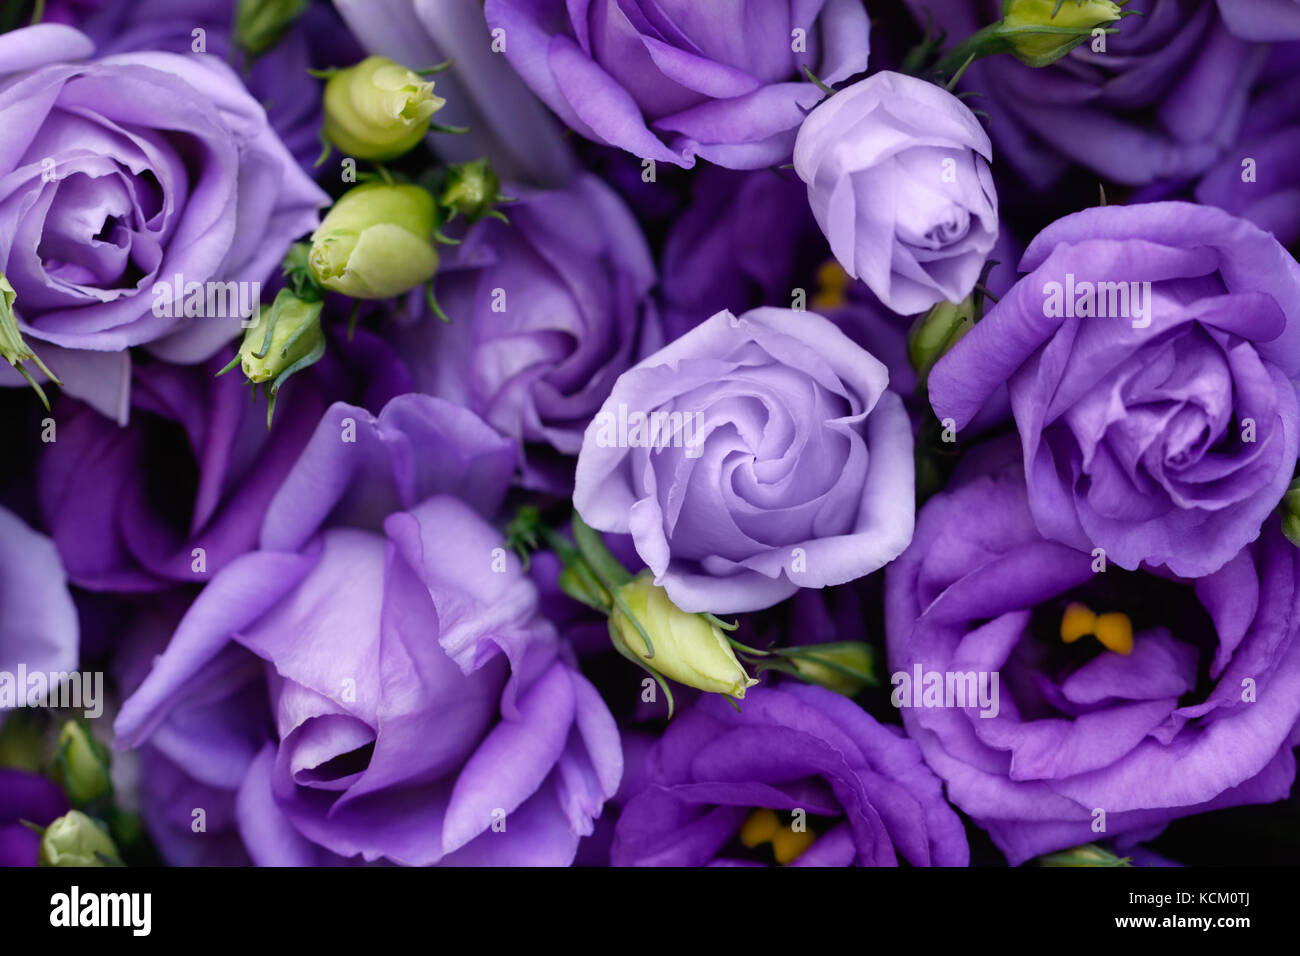 Pink and purple roses stock photos pink and purple roses stock beautiful purple roses background stock image izmirmasajfo